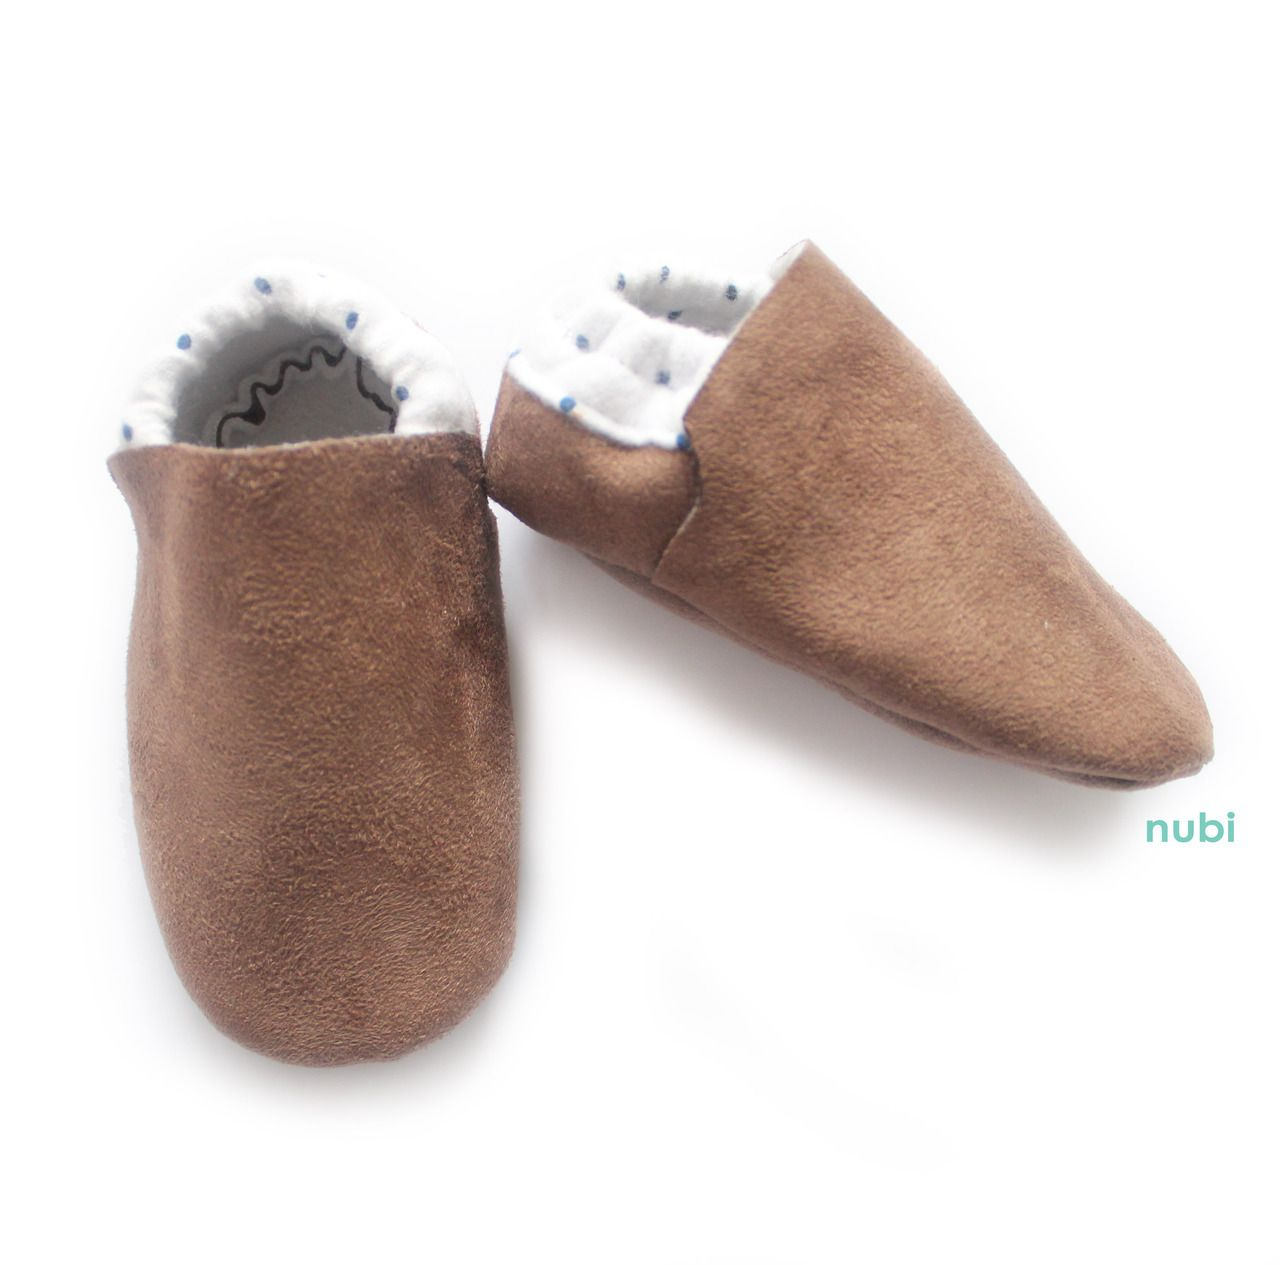 Baby Shoes Faux Suede Brown Polkadot Accent, handcrafted in Australia